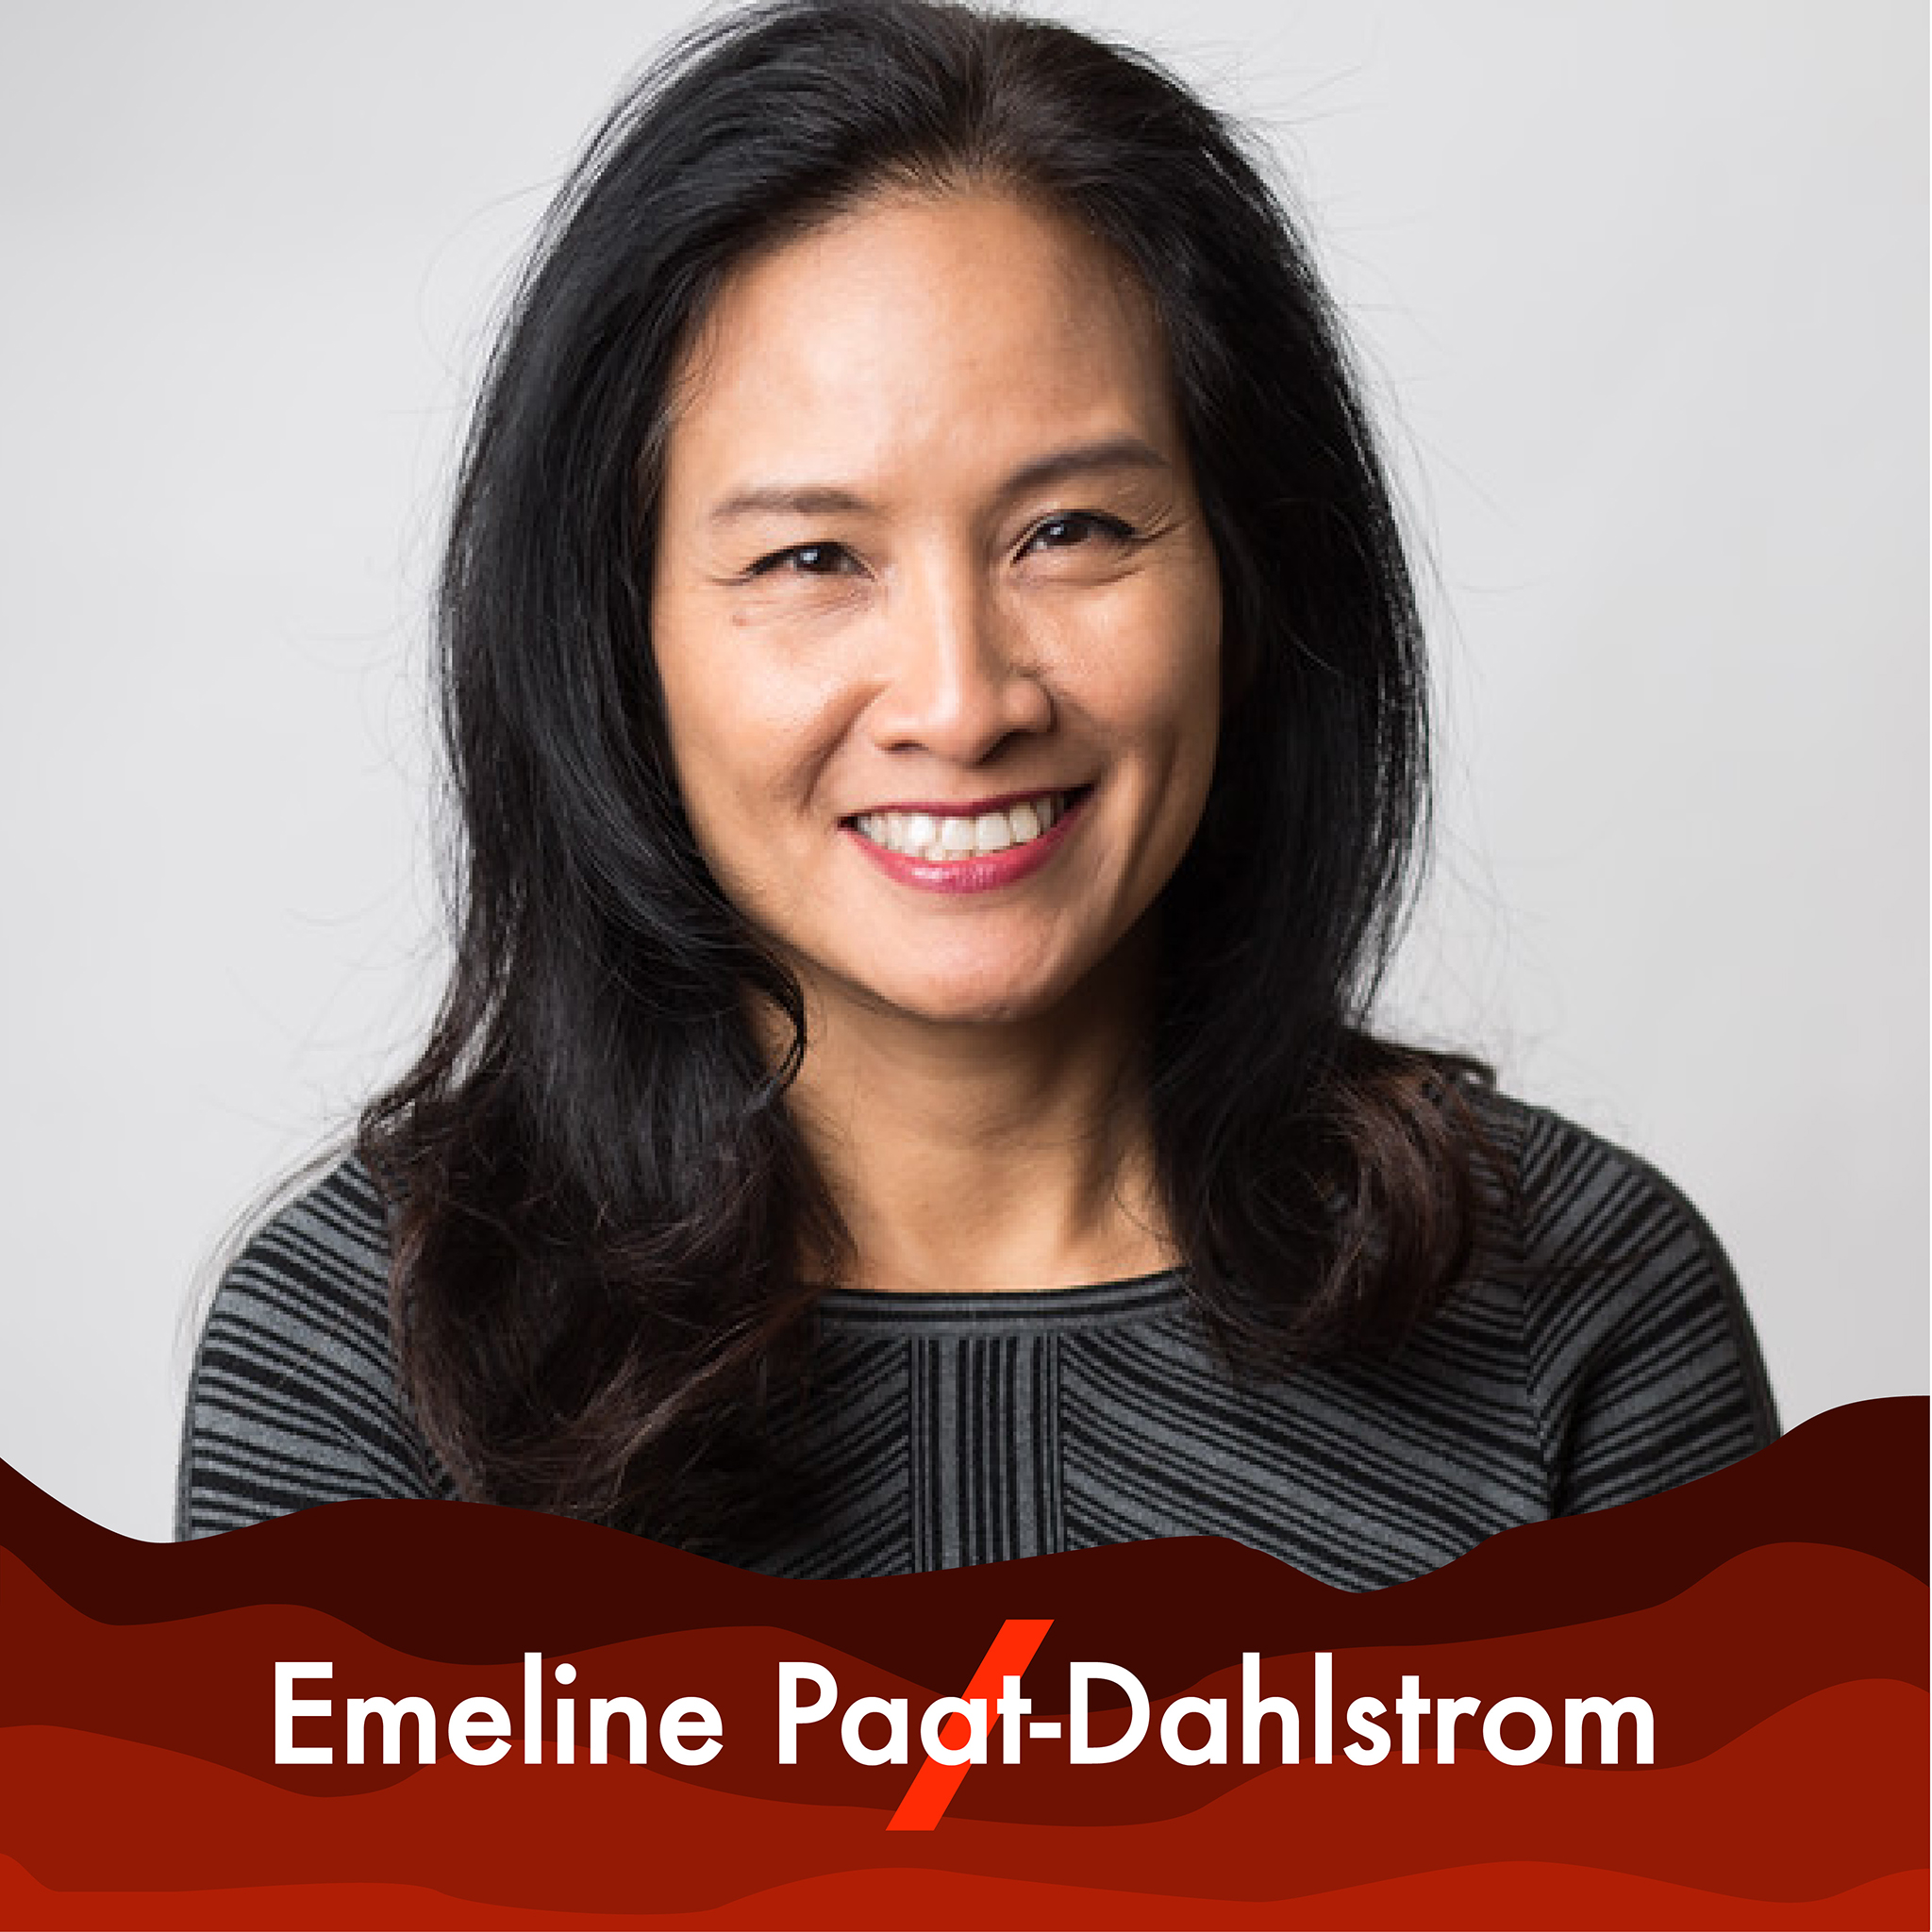 A picture of Emeline Paat-Dahlstrom